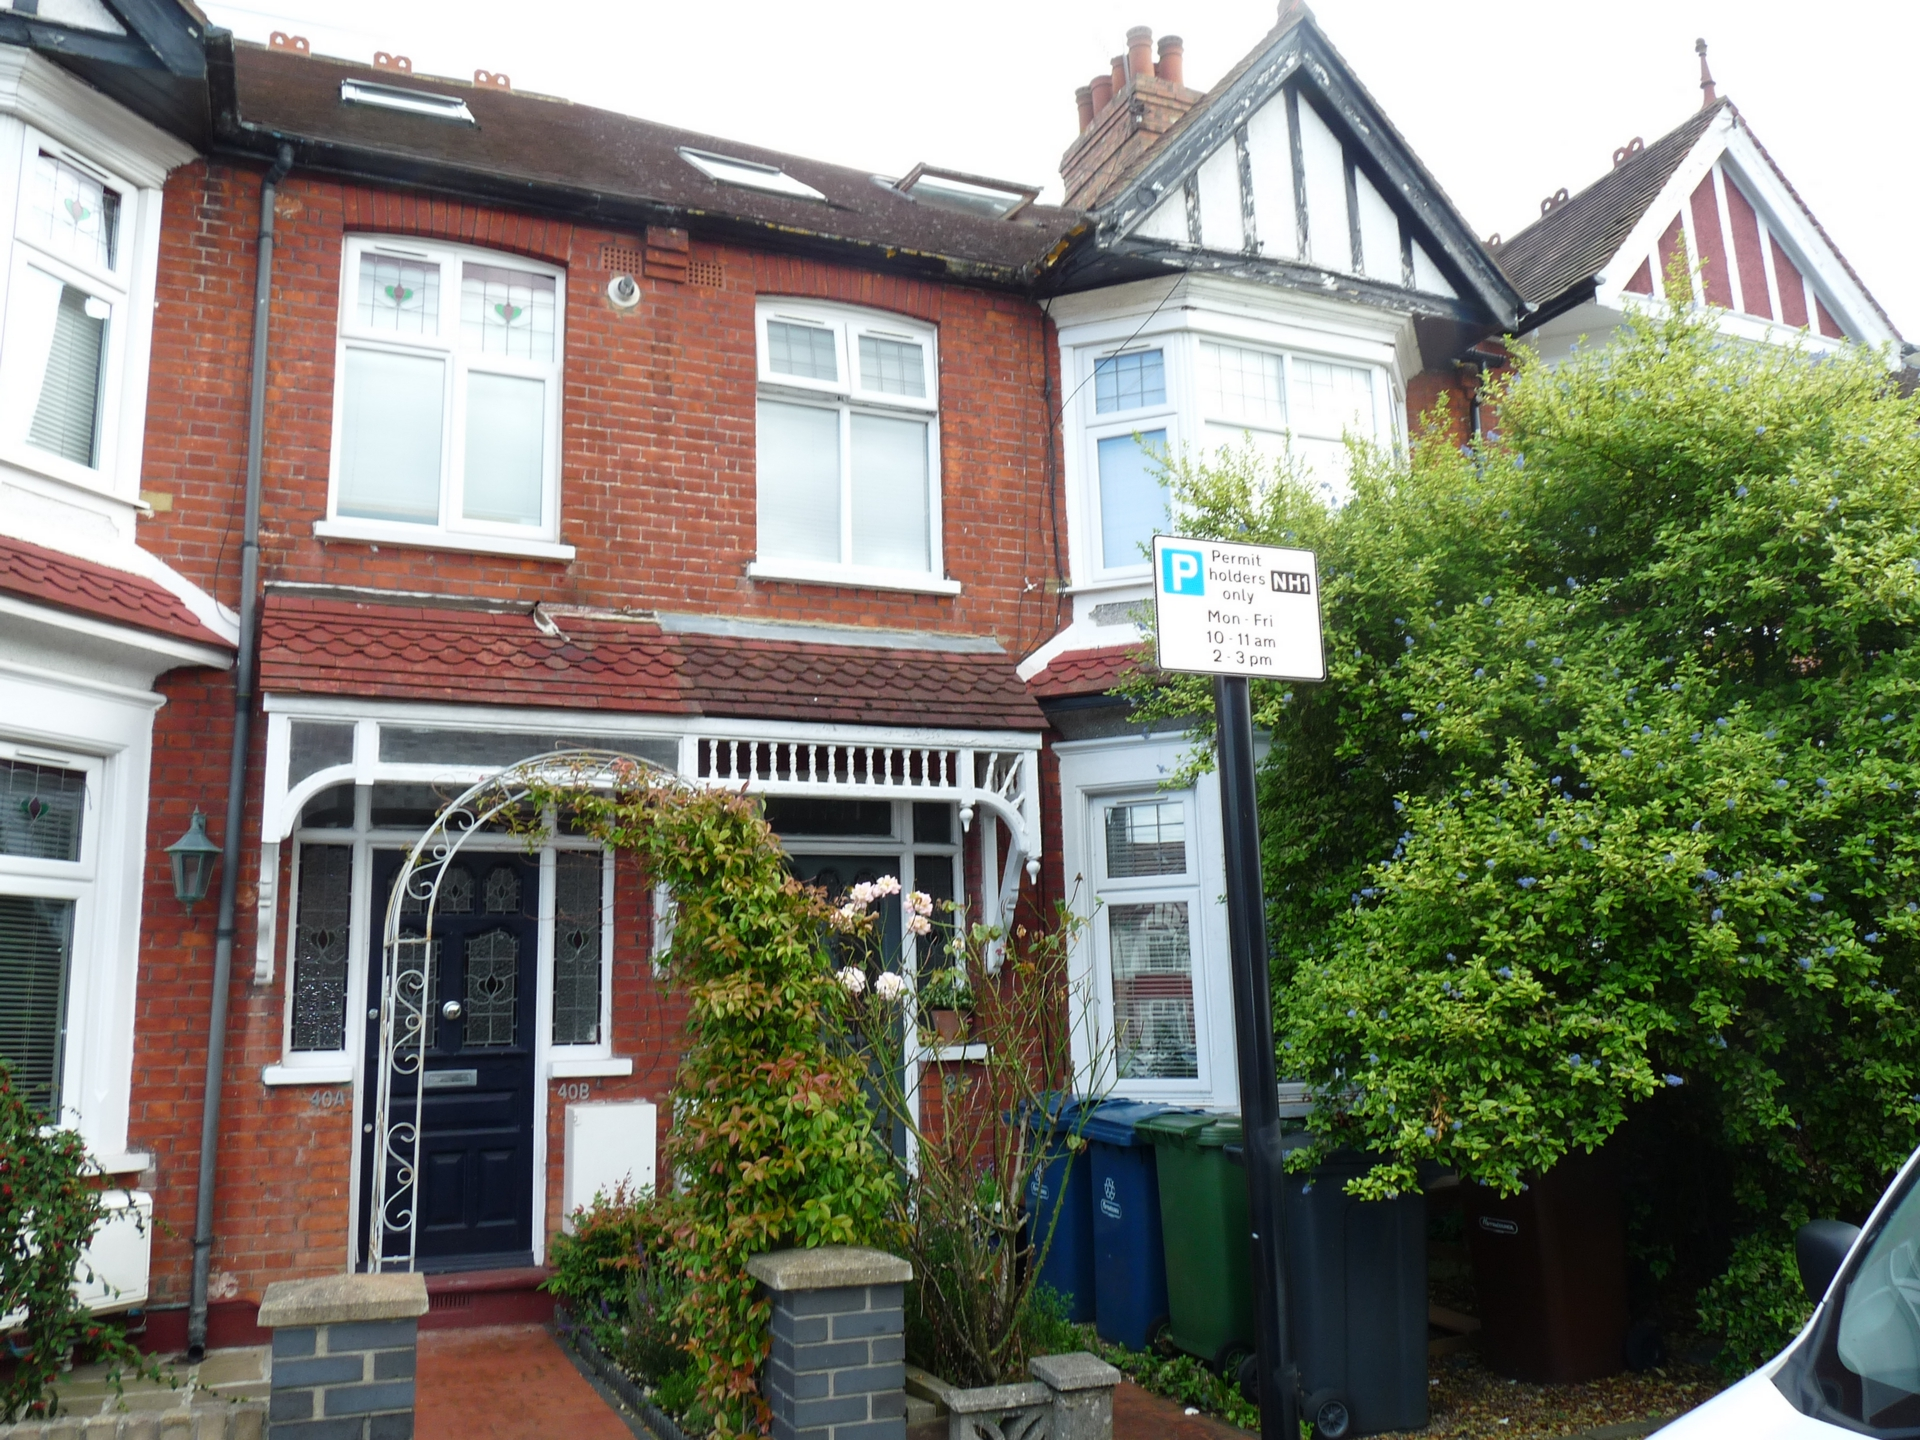 Somerset Road  Harrow  HA1